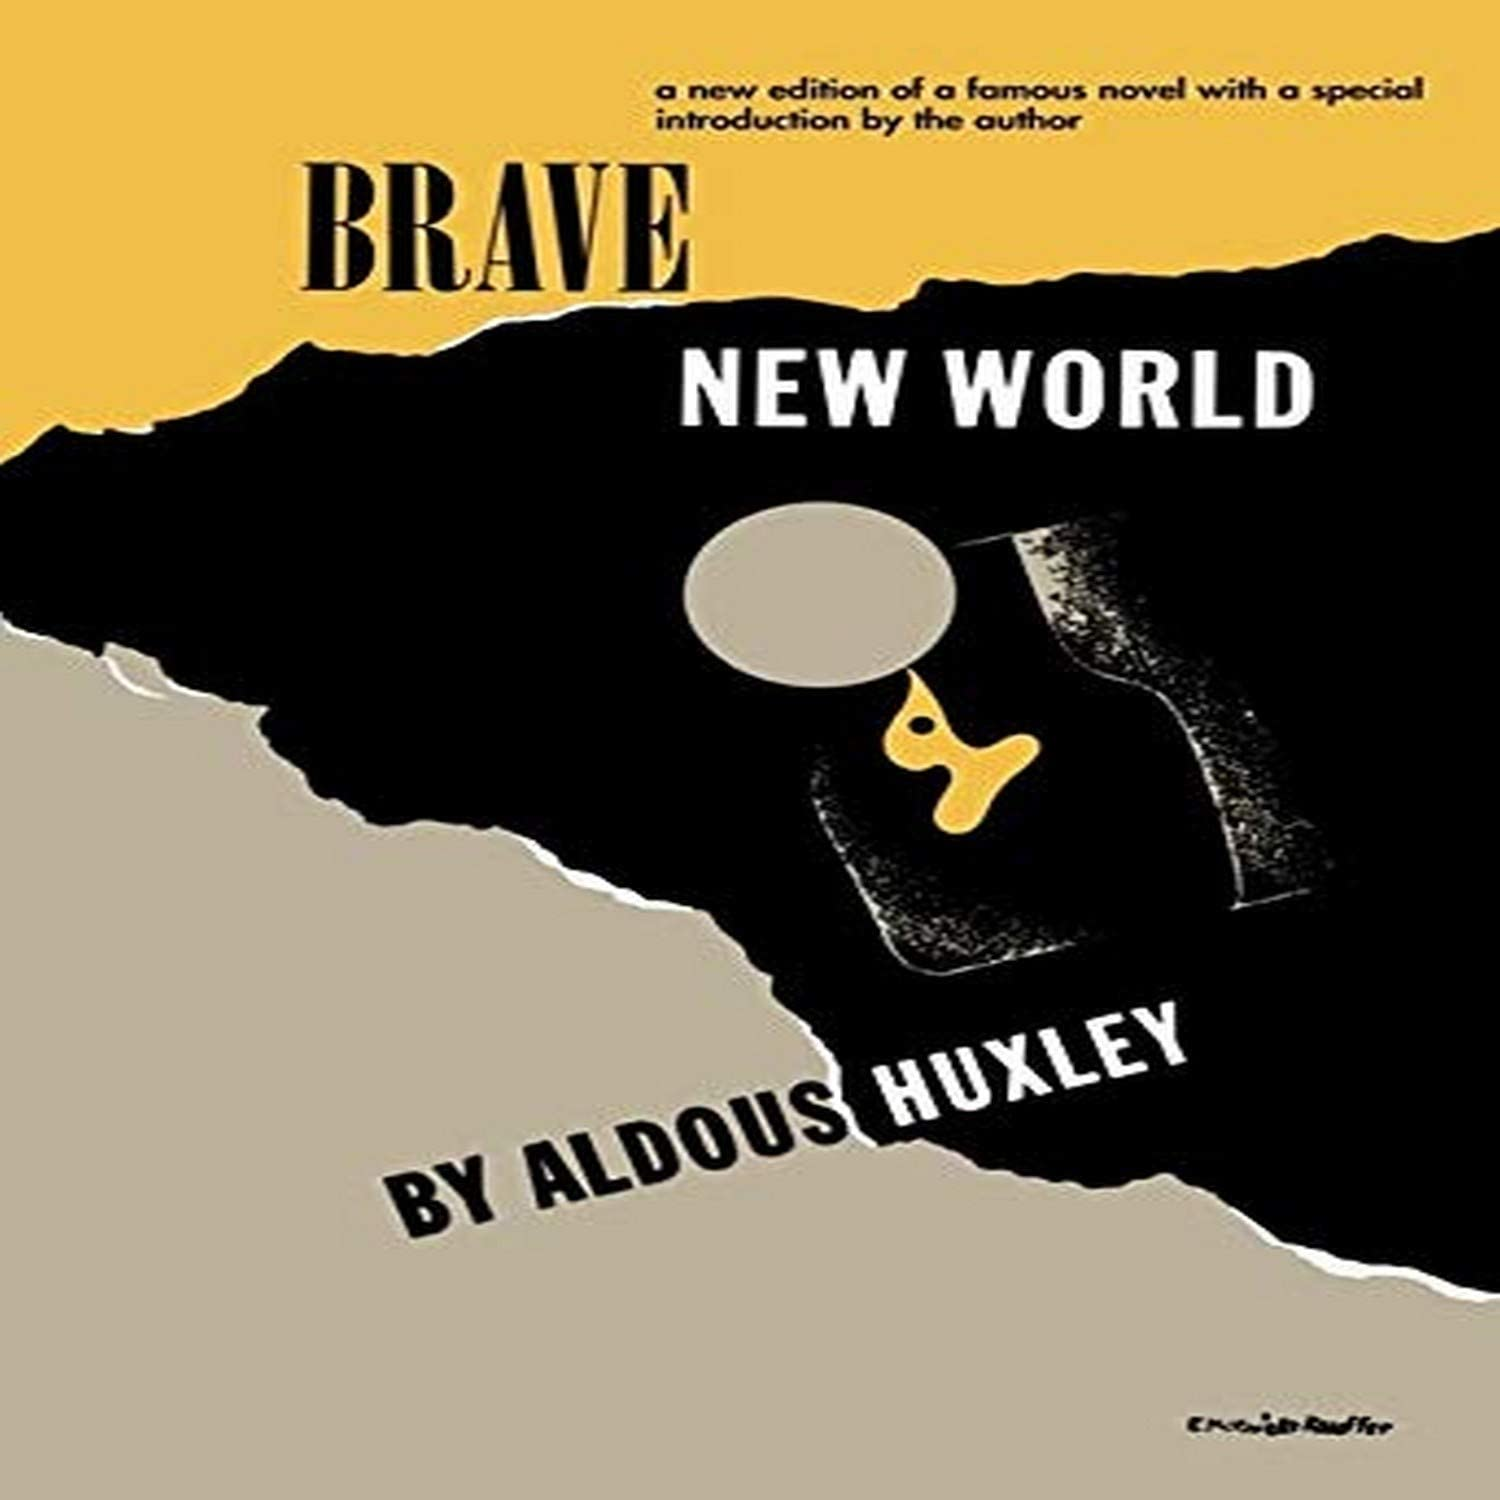 Brave New World is a novel written in 1931 by Aldous Huxley and published in 1932 Set in London of AD 2540 (632 AF?After Ford?in the book) the novel anticipates developments in reproductive technology